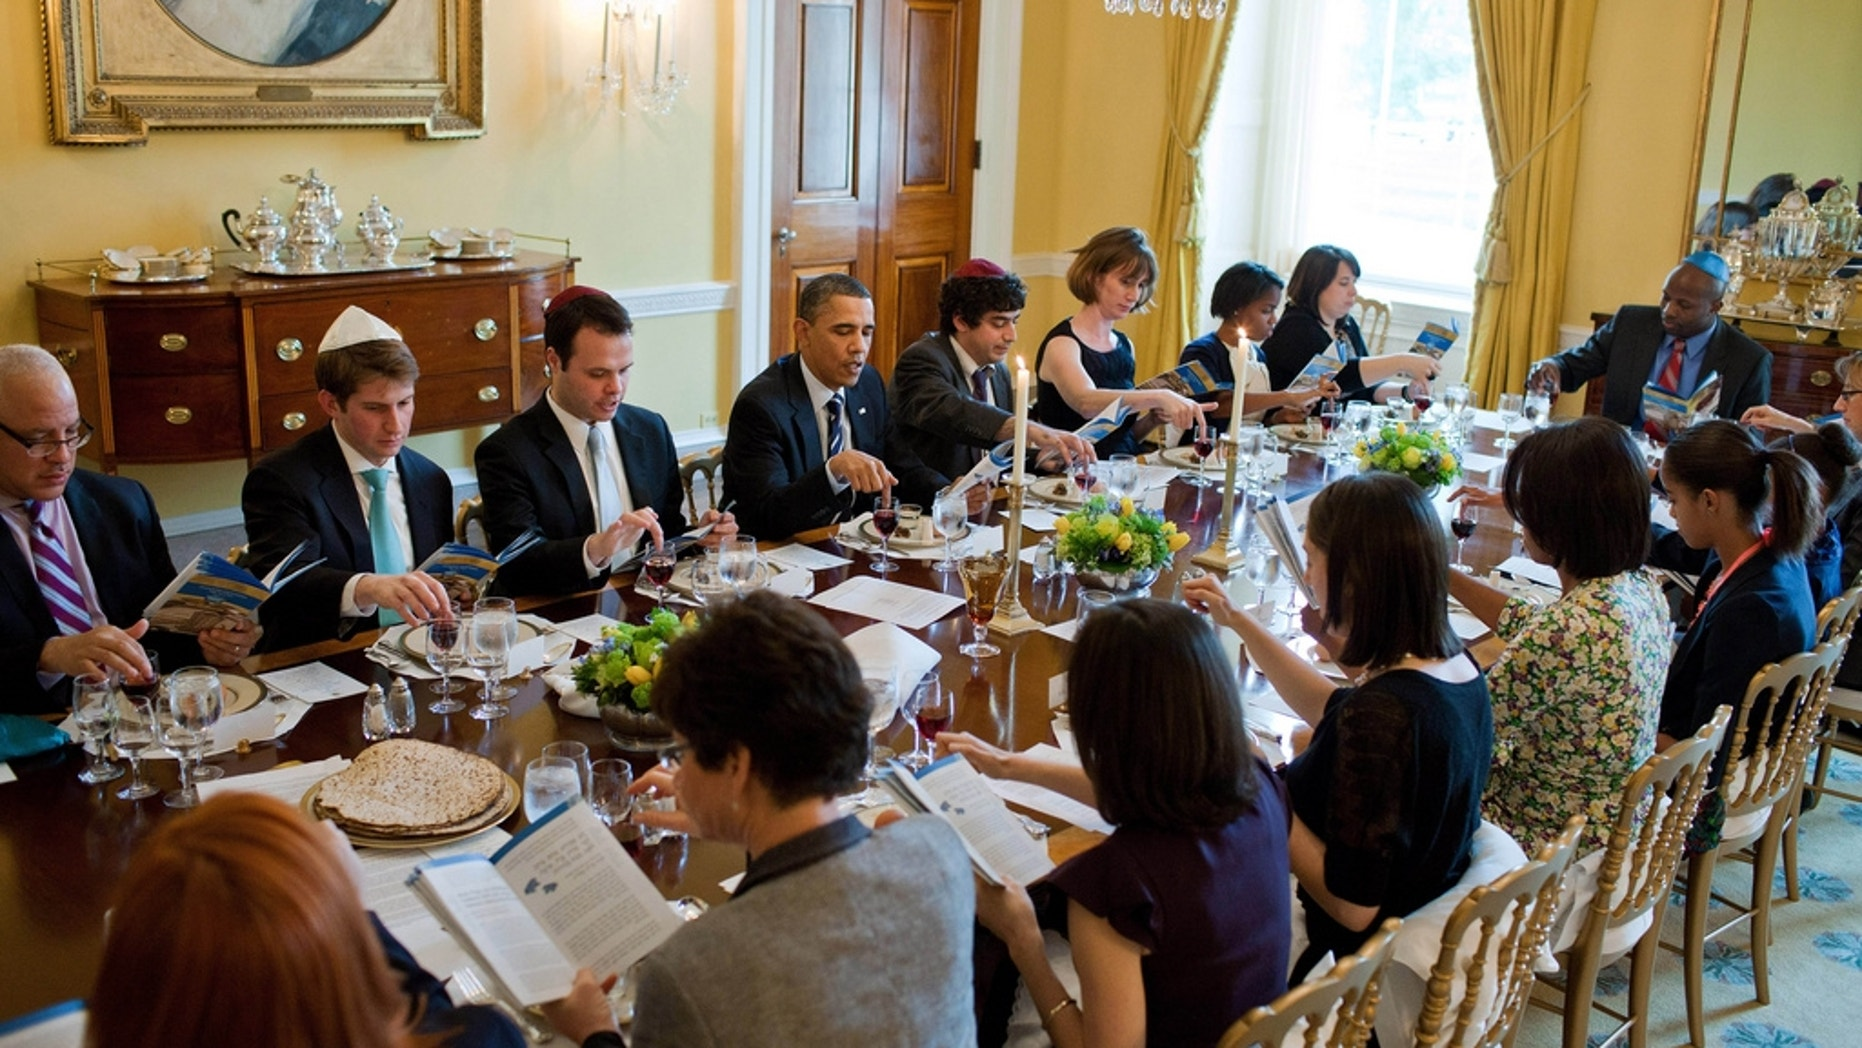 President Barack Obama and First Lady Michelle Obama mark the beginning of Passover with a Seder in the Old Family Dining Room of the White House, April 18, 2011. (Official White House Photo by Pete Souza)